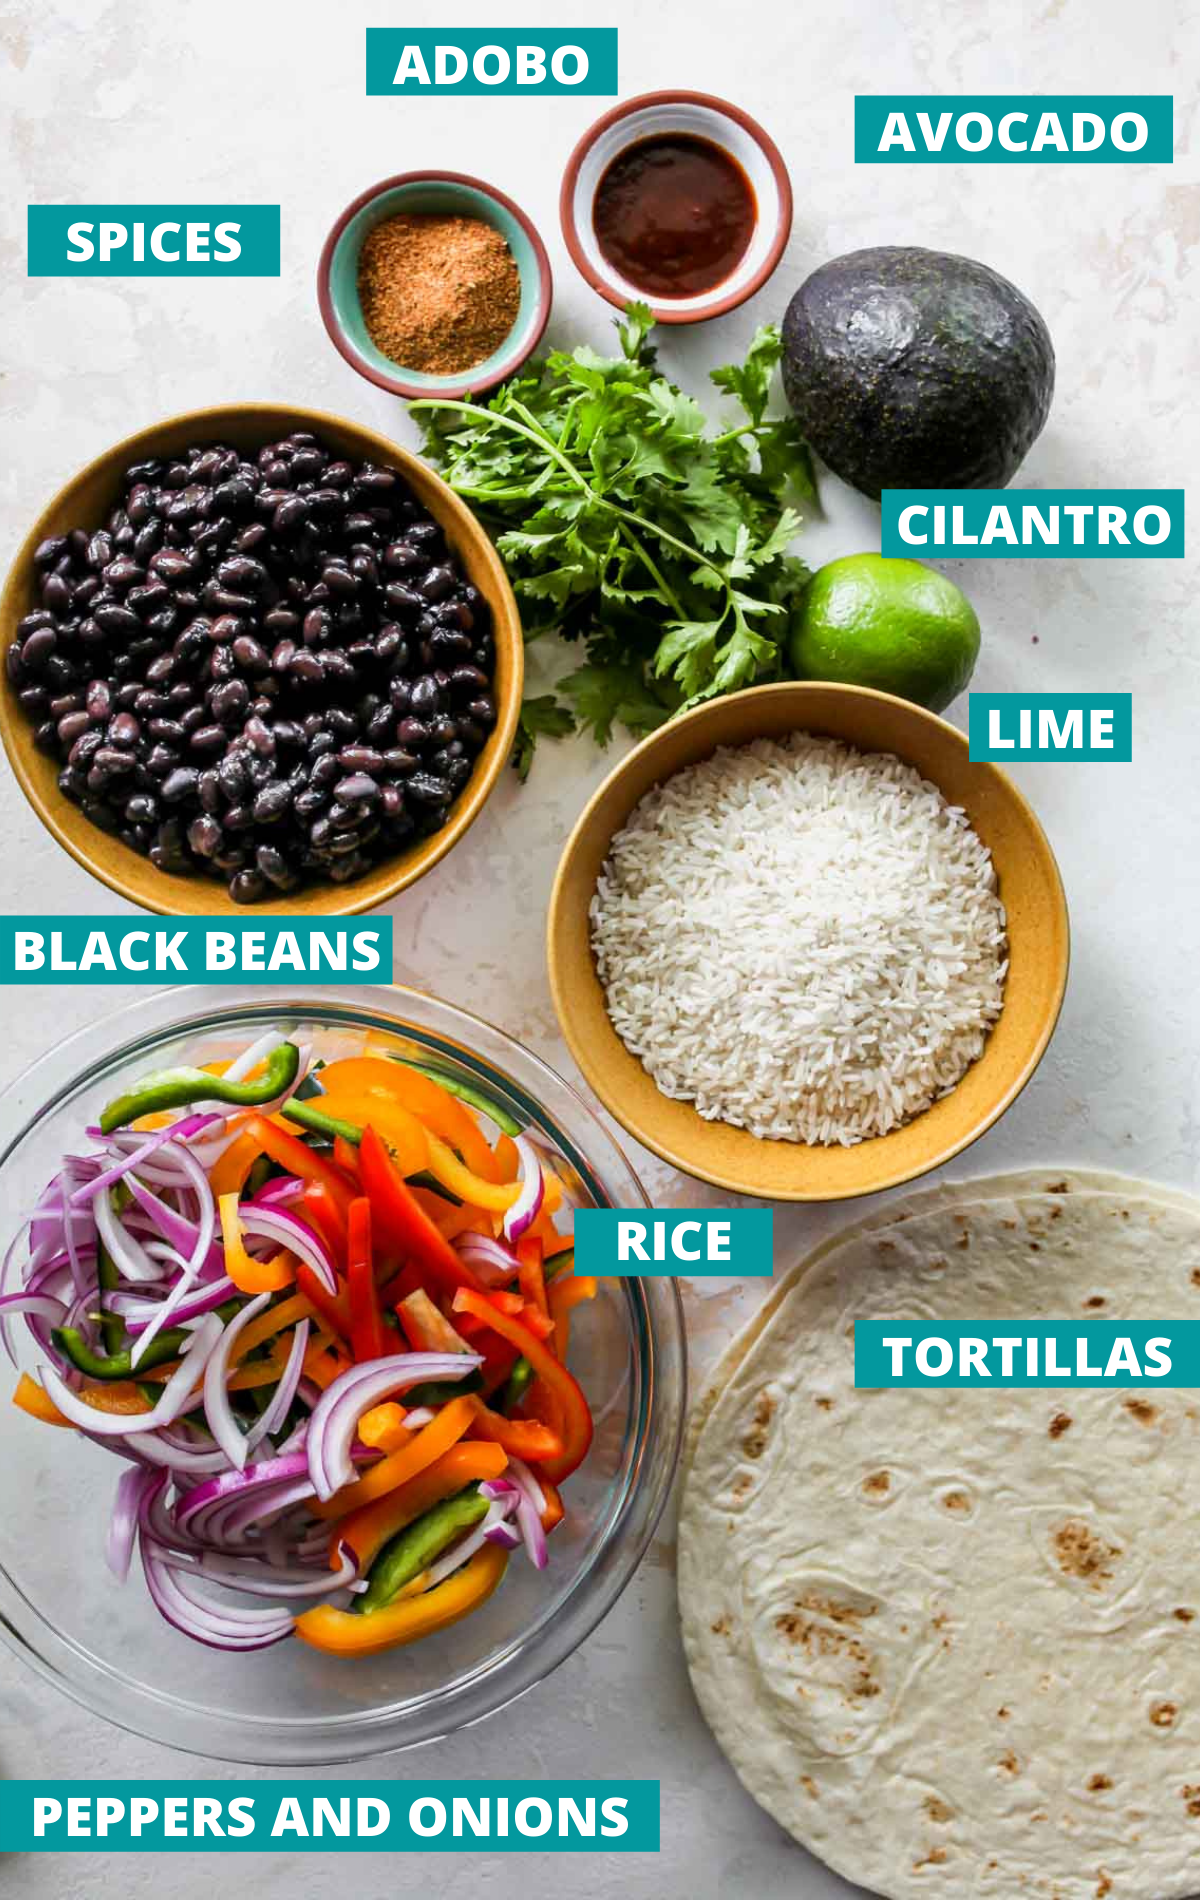 Burrito ingredients in separate bowls with blue labels